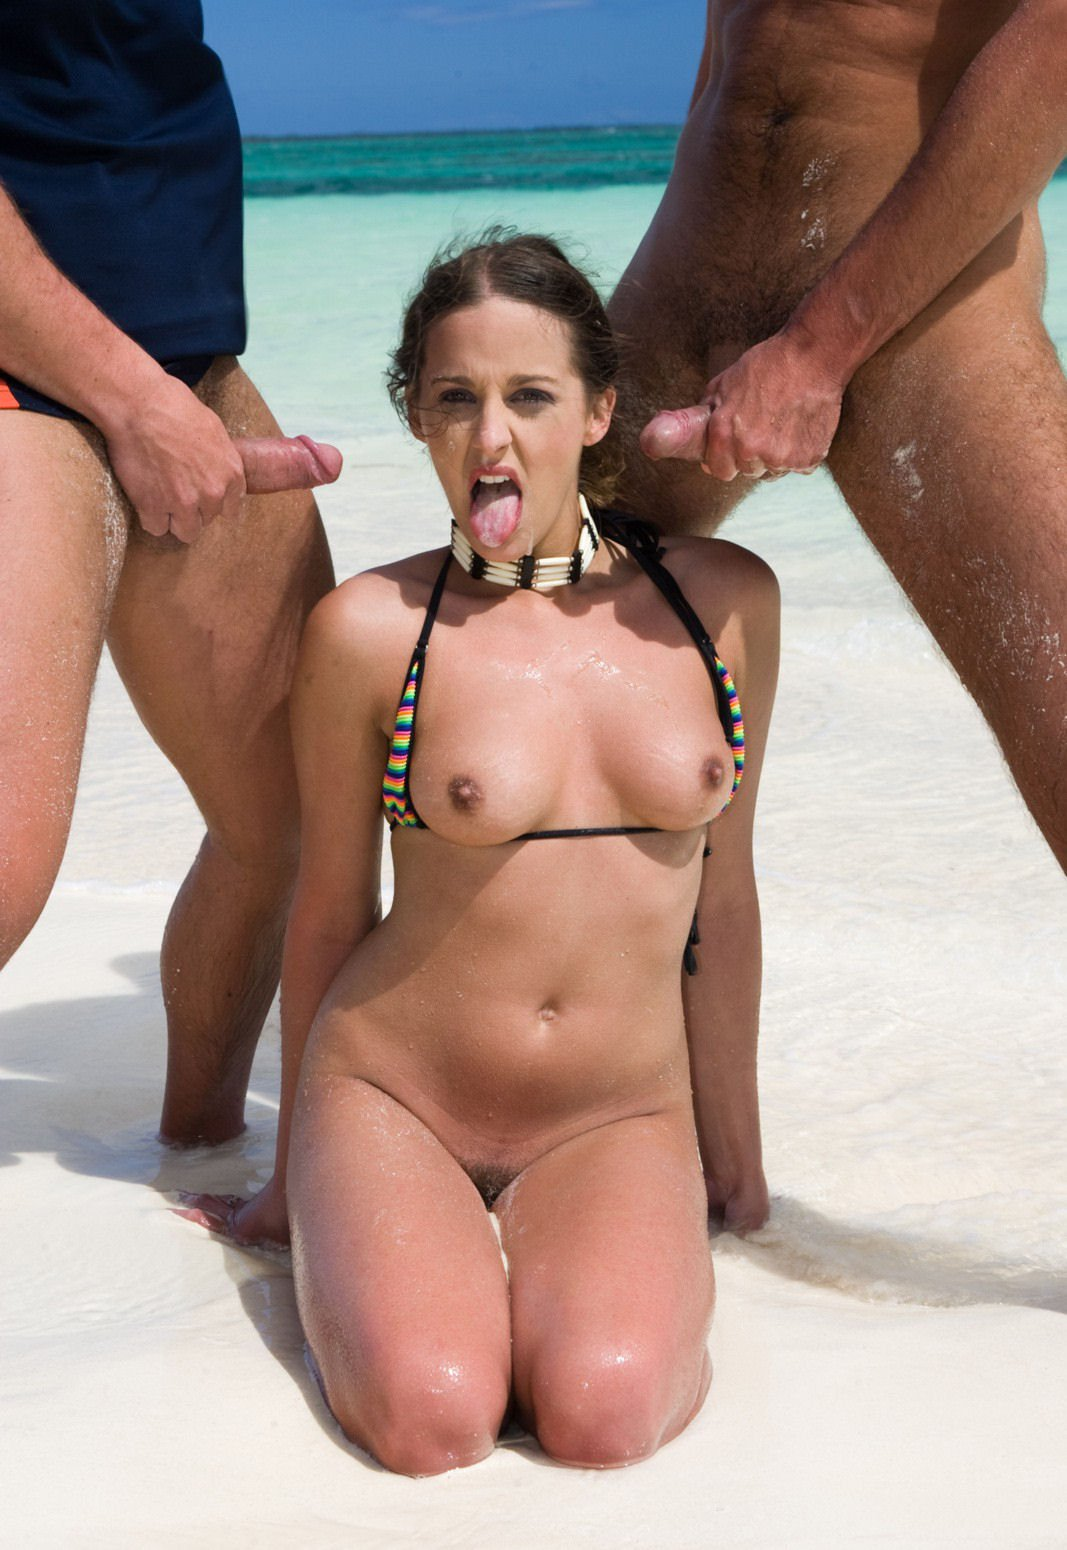 skinny brunette porn videos there